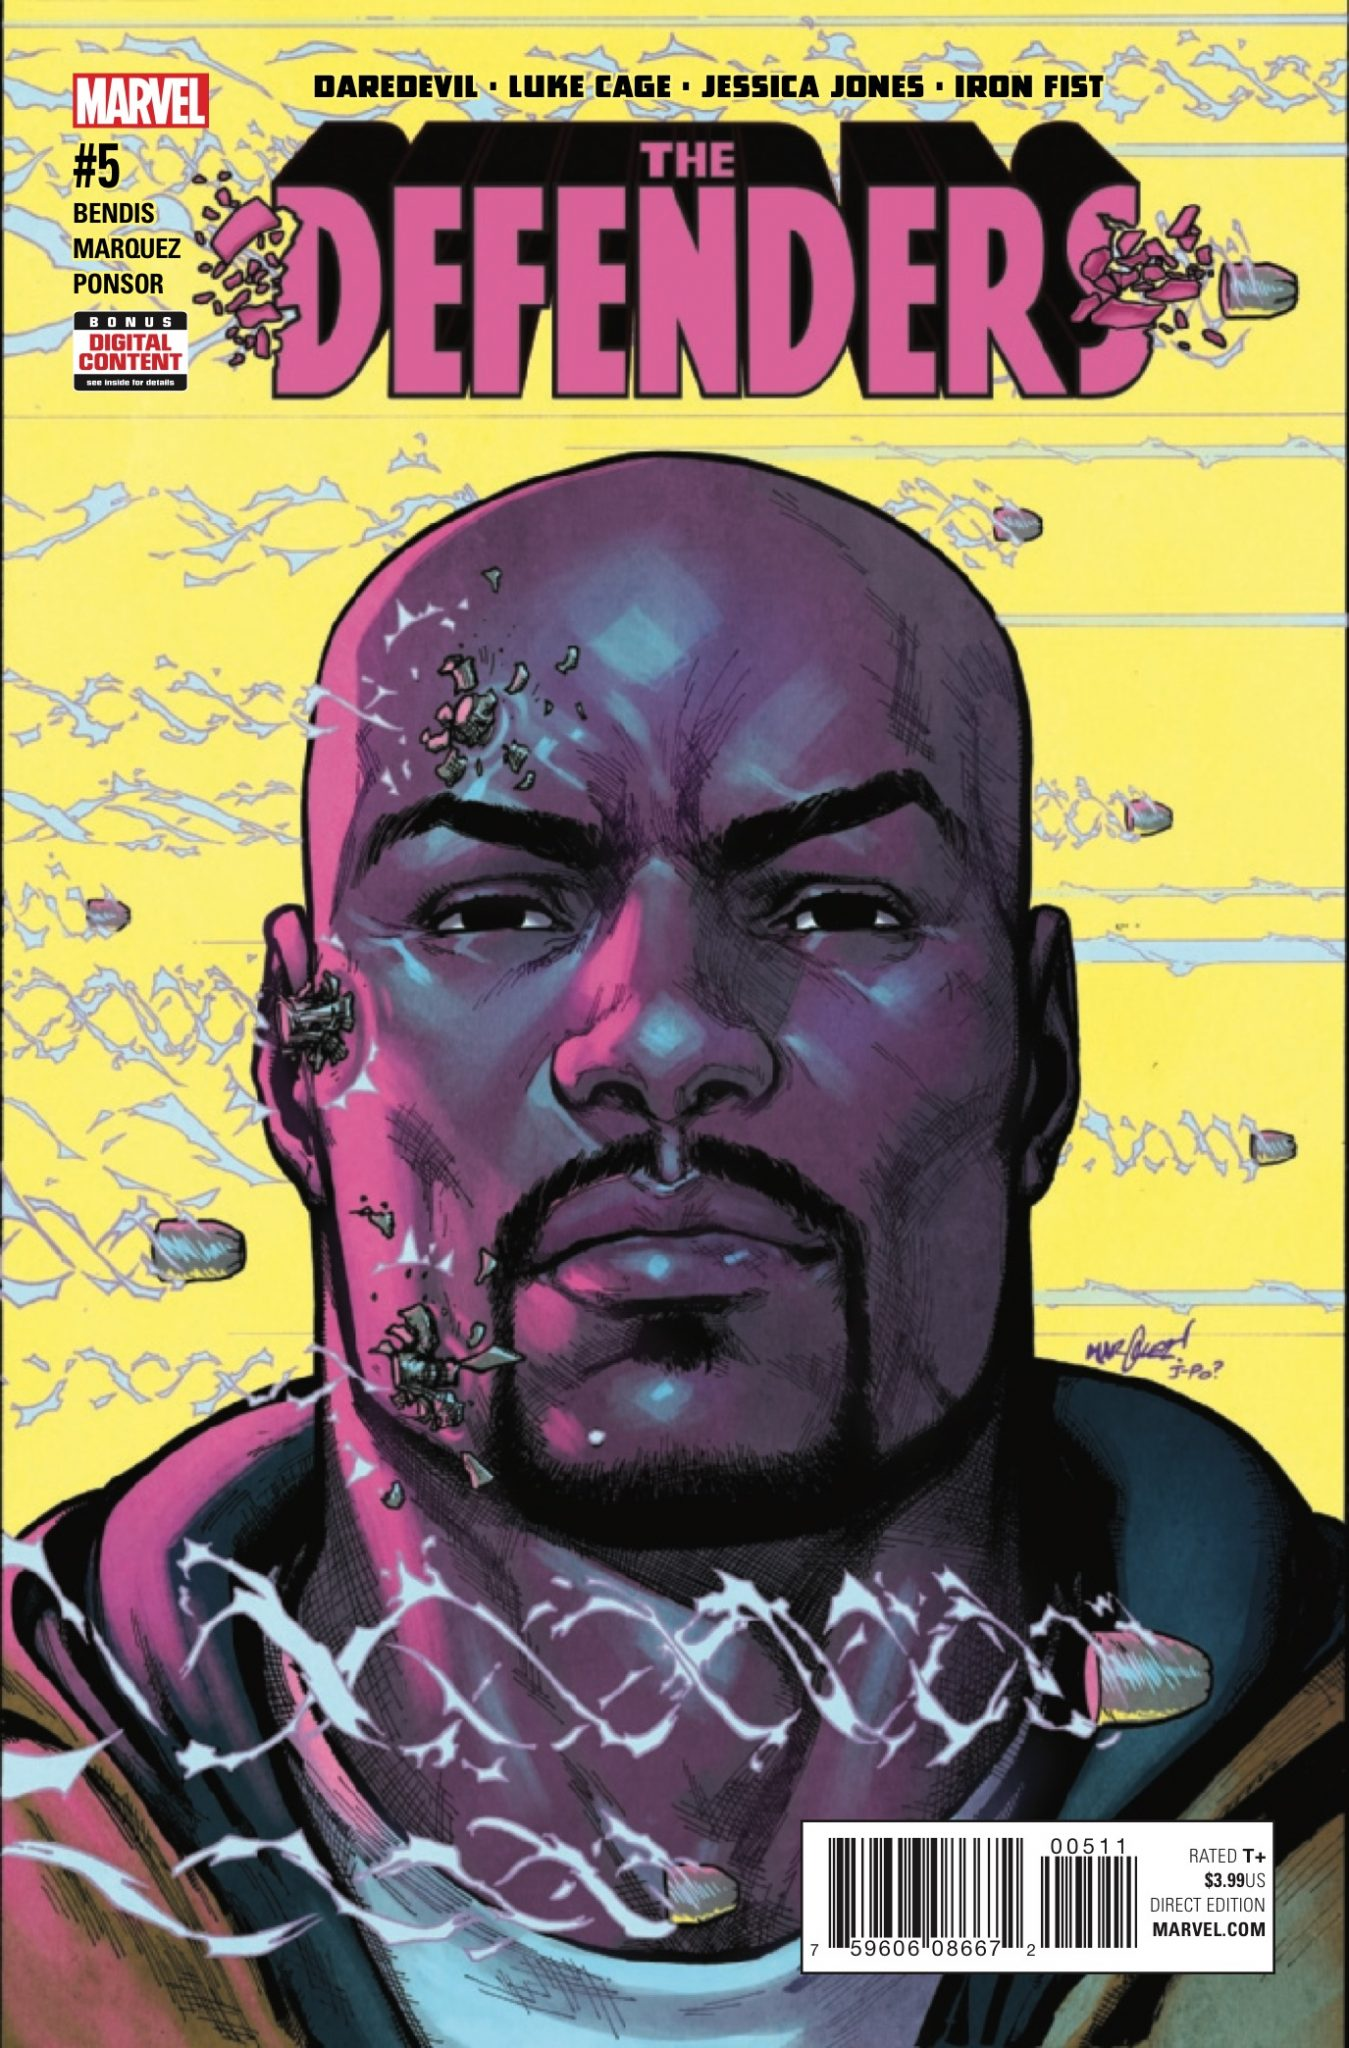 The Defenders #5 Review